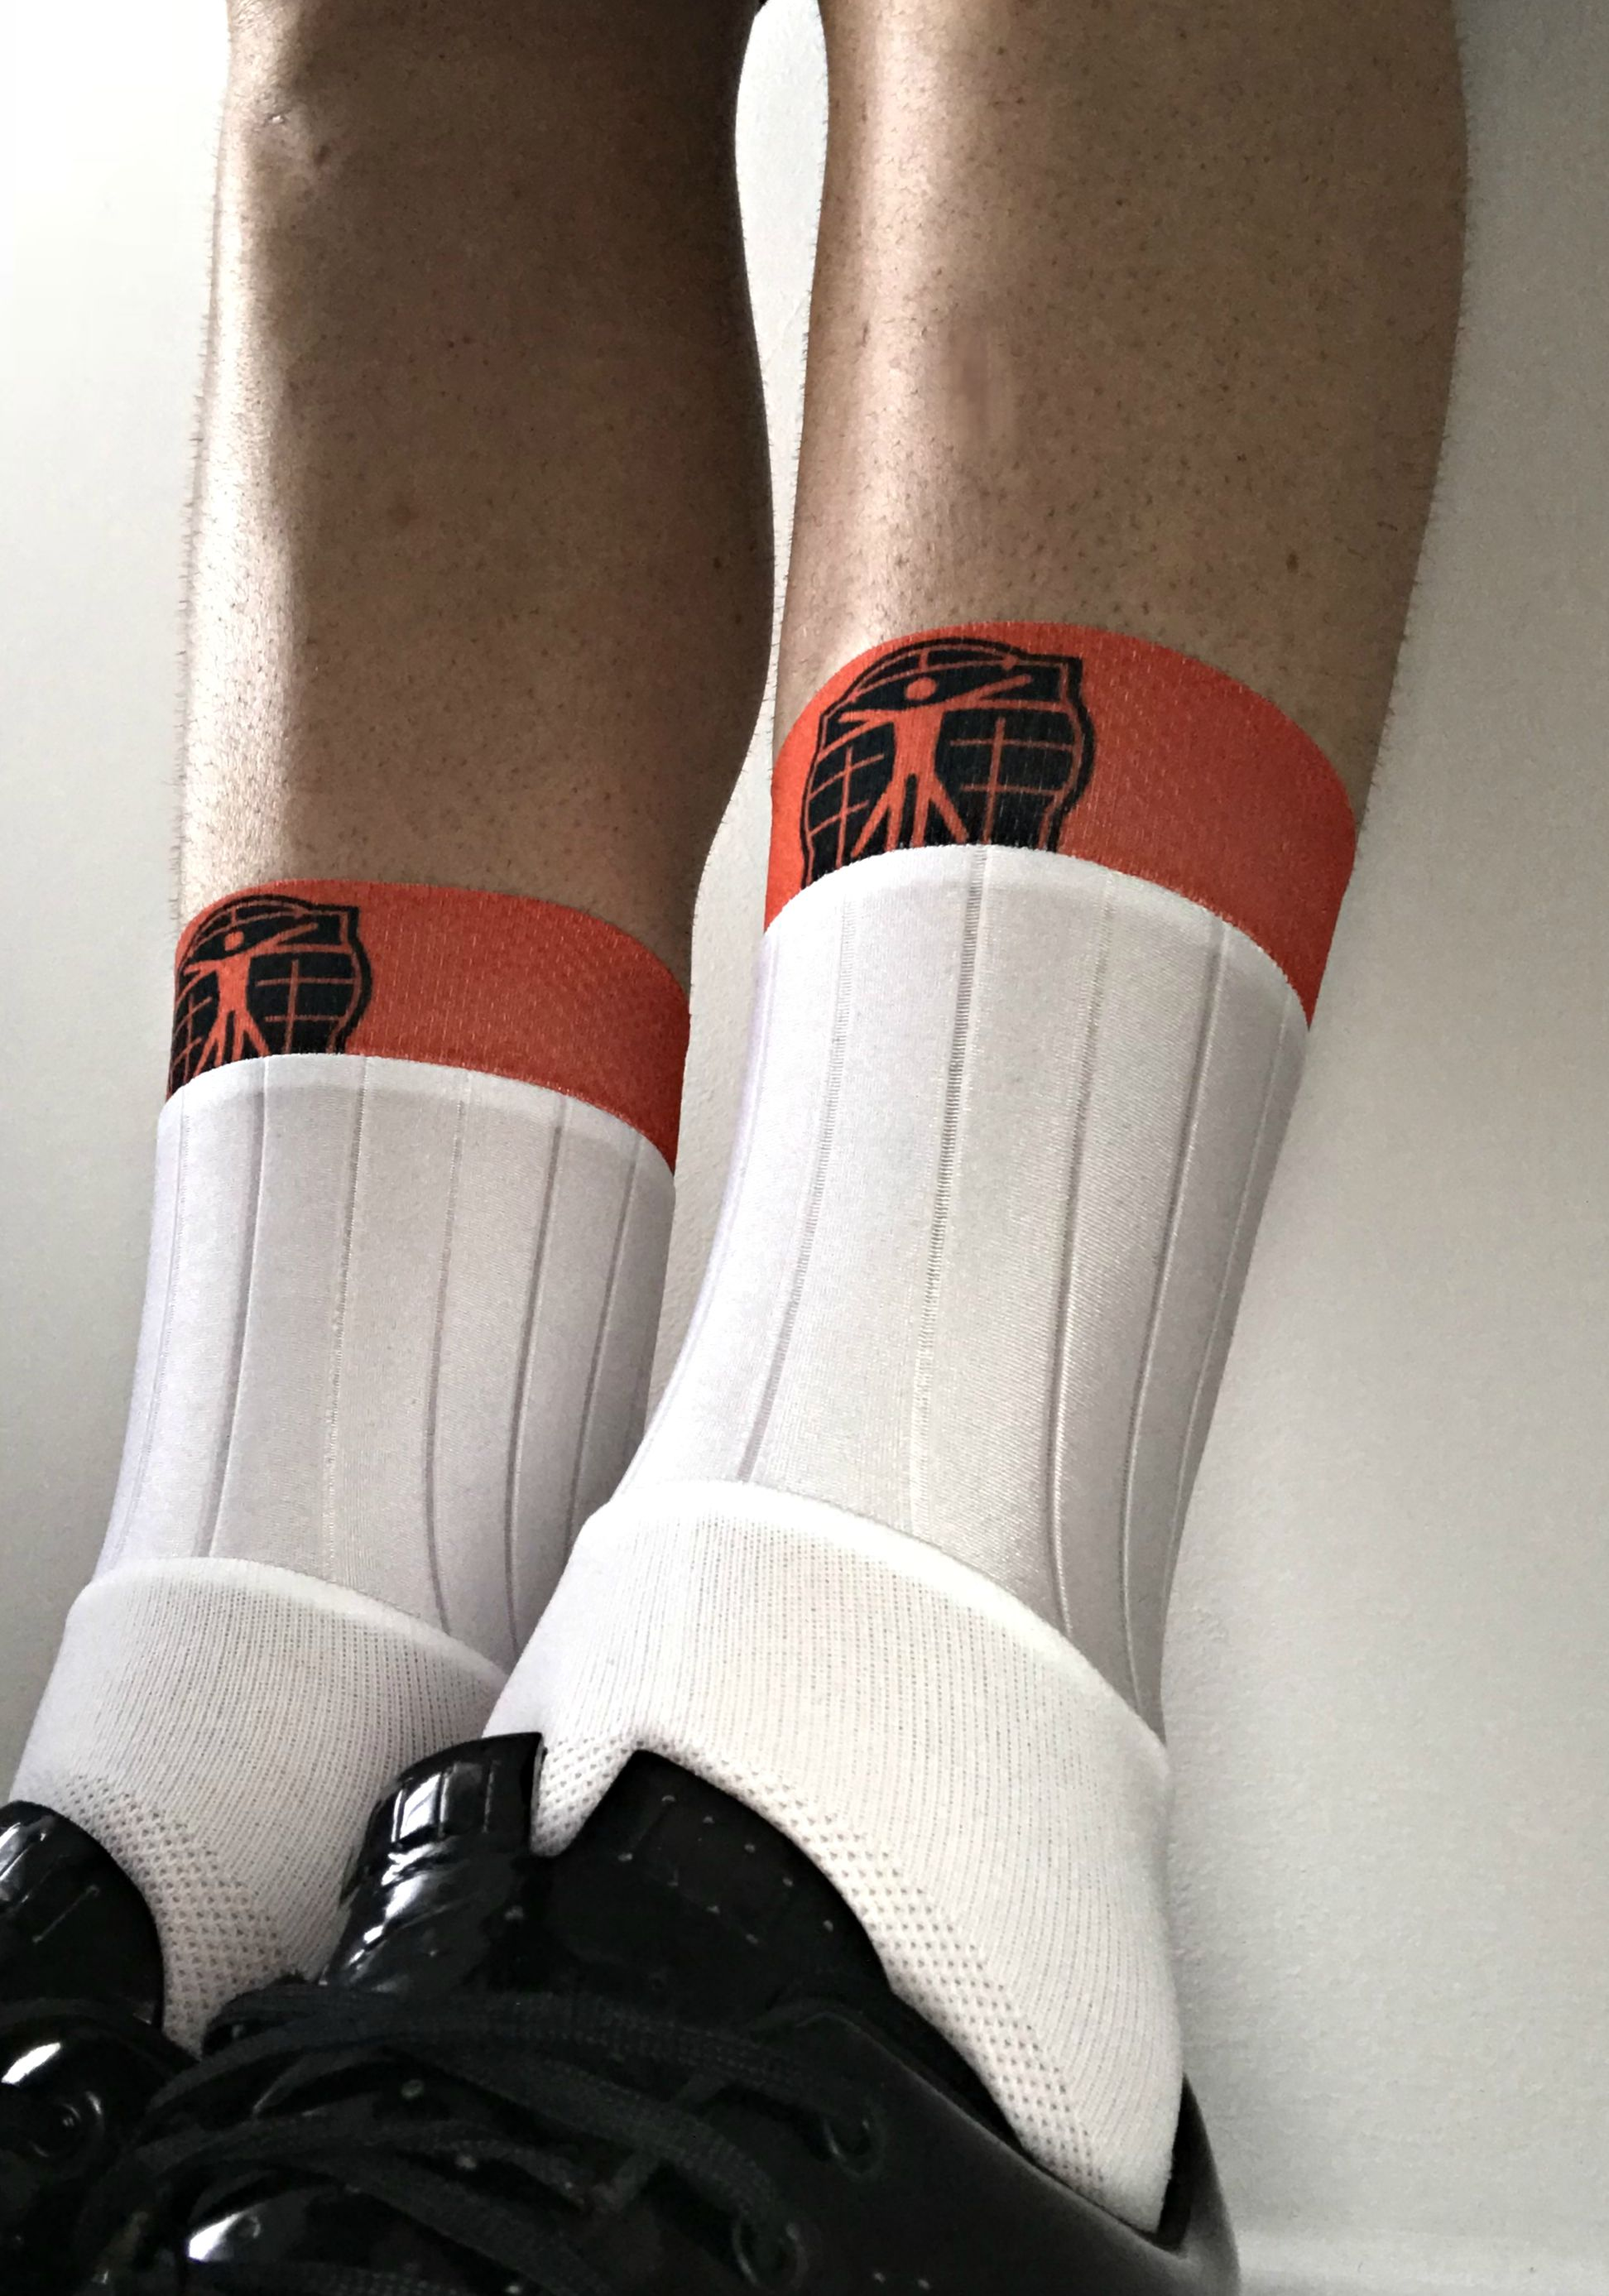 More Bioracer Road Race Aero socks coming in very soon on our online store. eba5fcab9